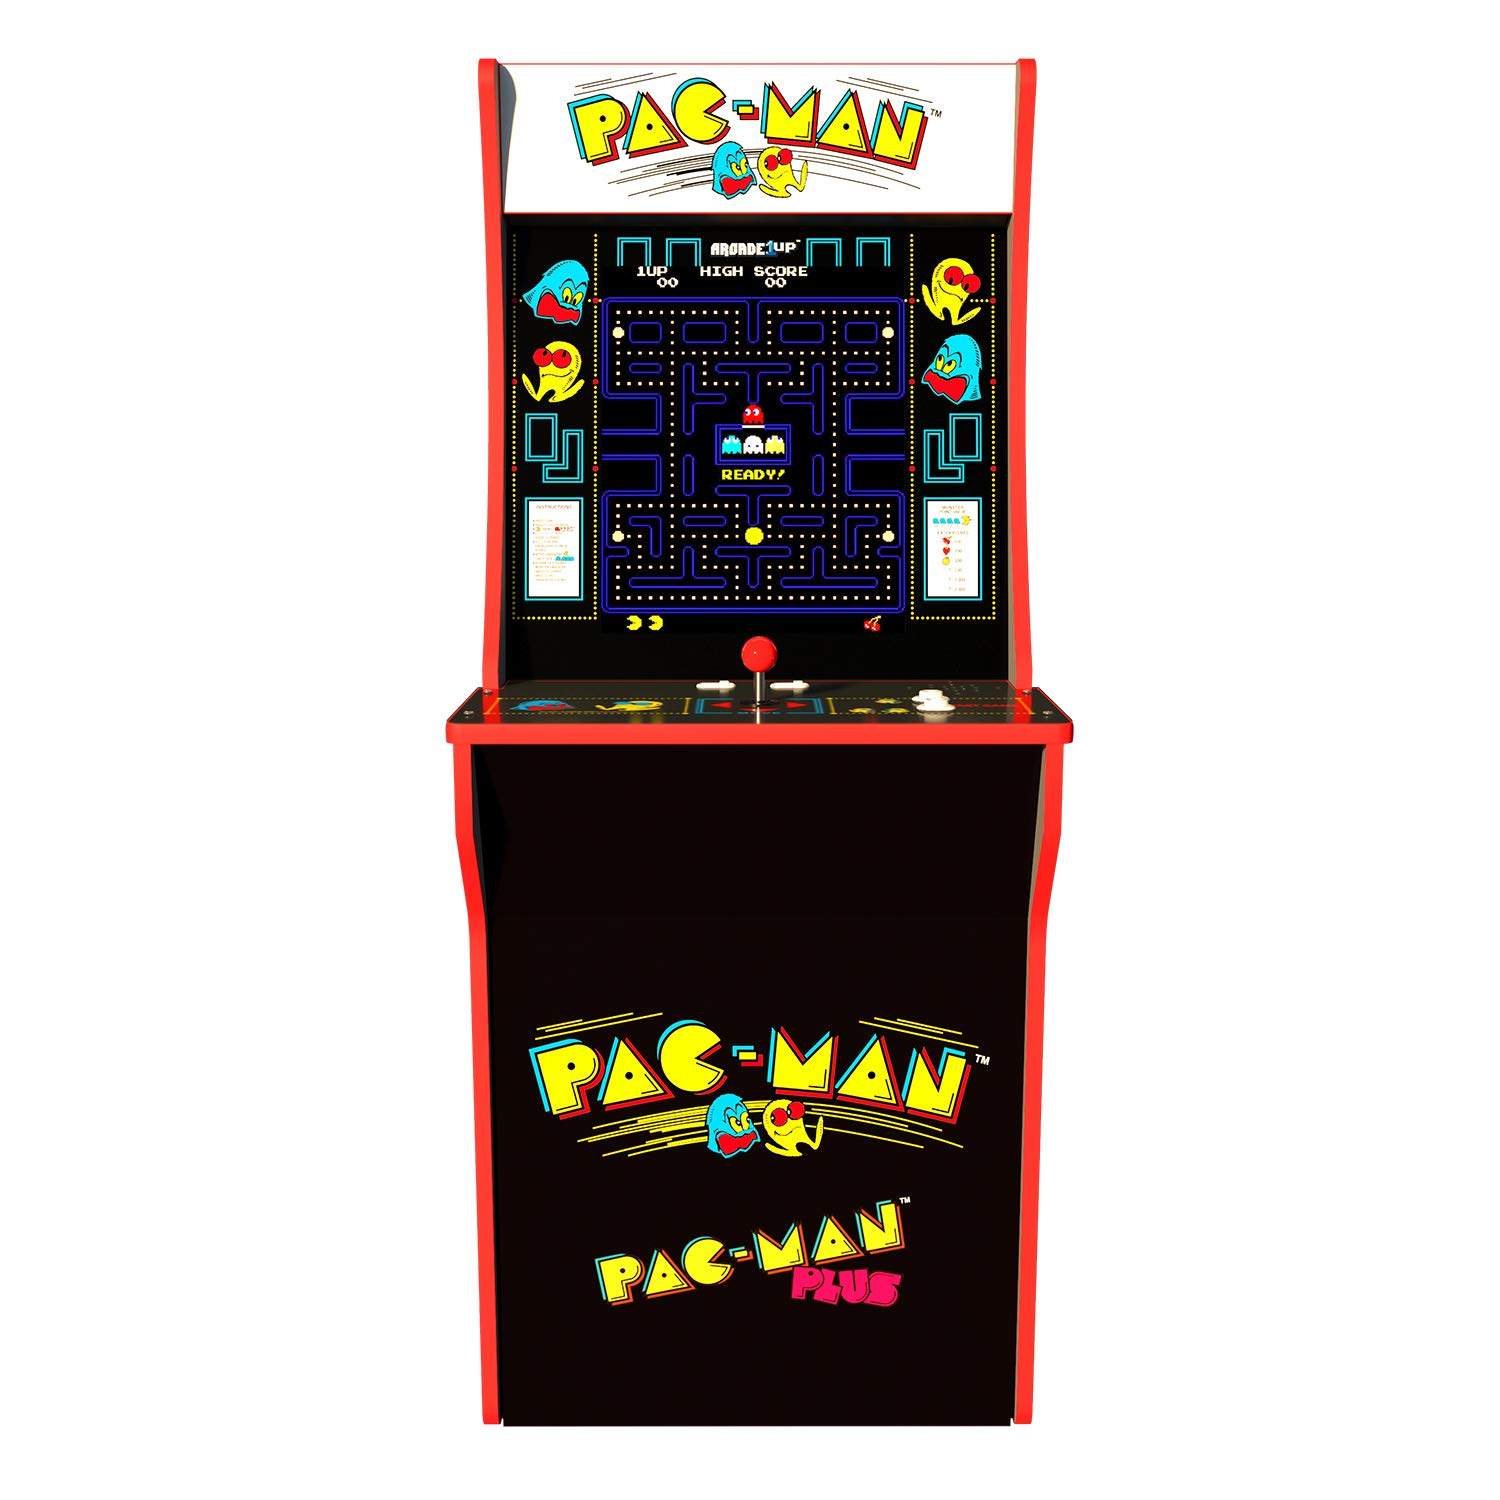 Arcade 1Up Pac-Man Deluxe Arcade System with Riser, 5ft by Arcade 1Up (Image #3)